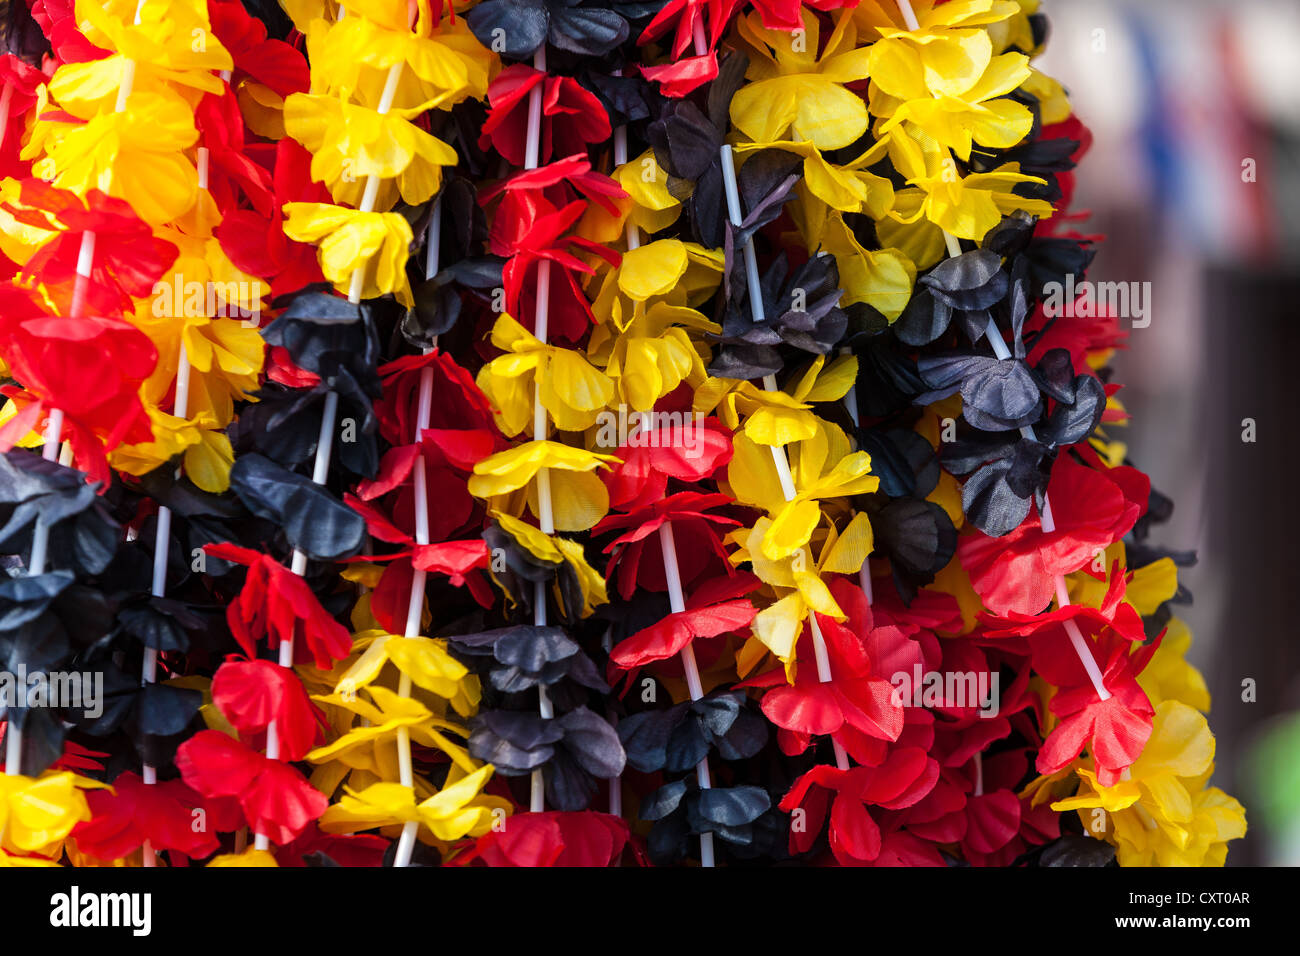 Black, red and golden ornaments, memorabilia for fans, PublicGround - Stock Image